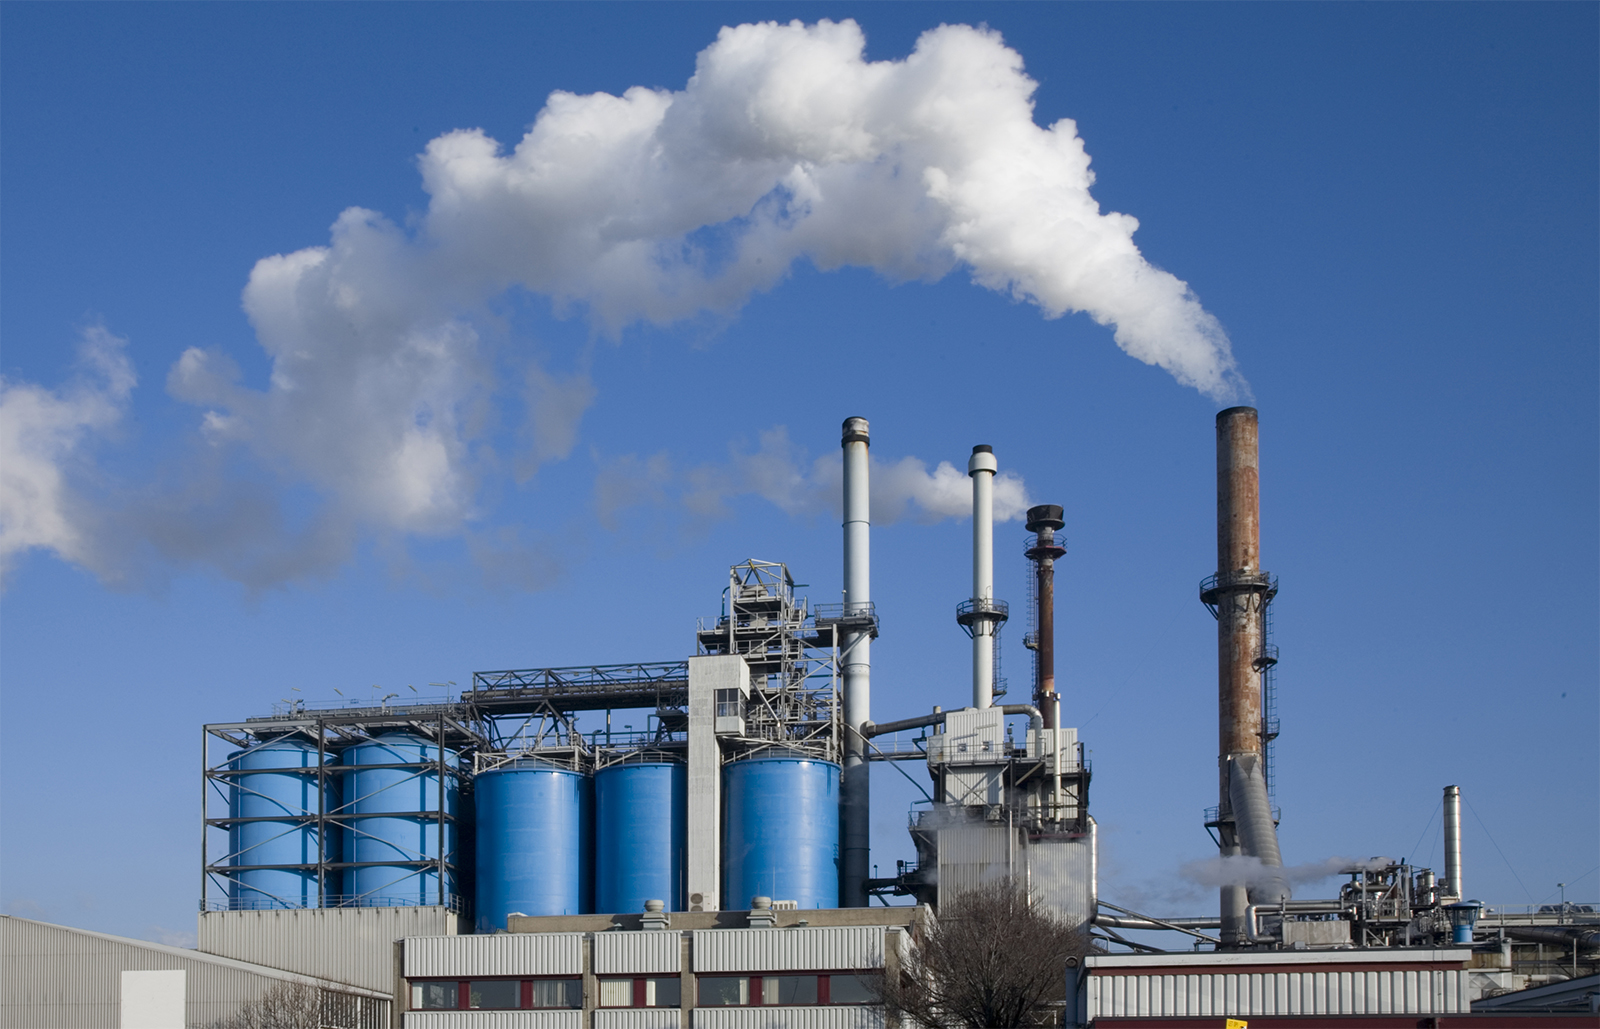 industrial pollution Download 66,102 industrial pollution stock photos for free or amazingly low rates new users enjoy 60% off 76,410,251 stock photos online.